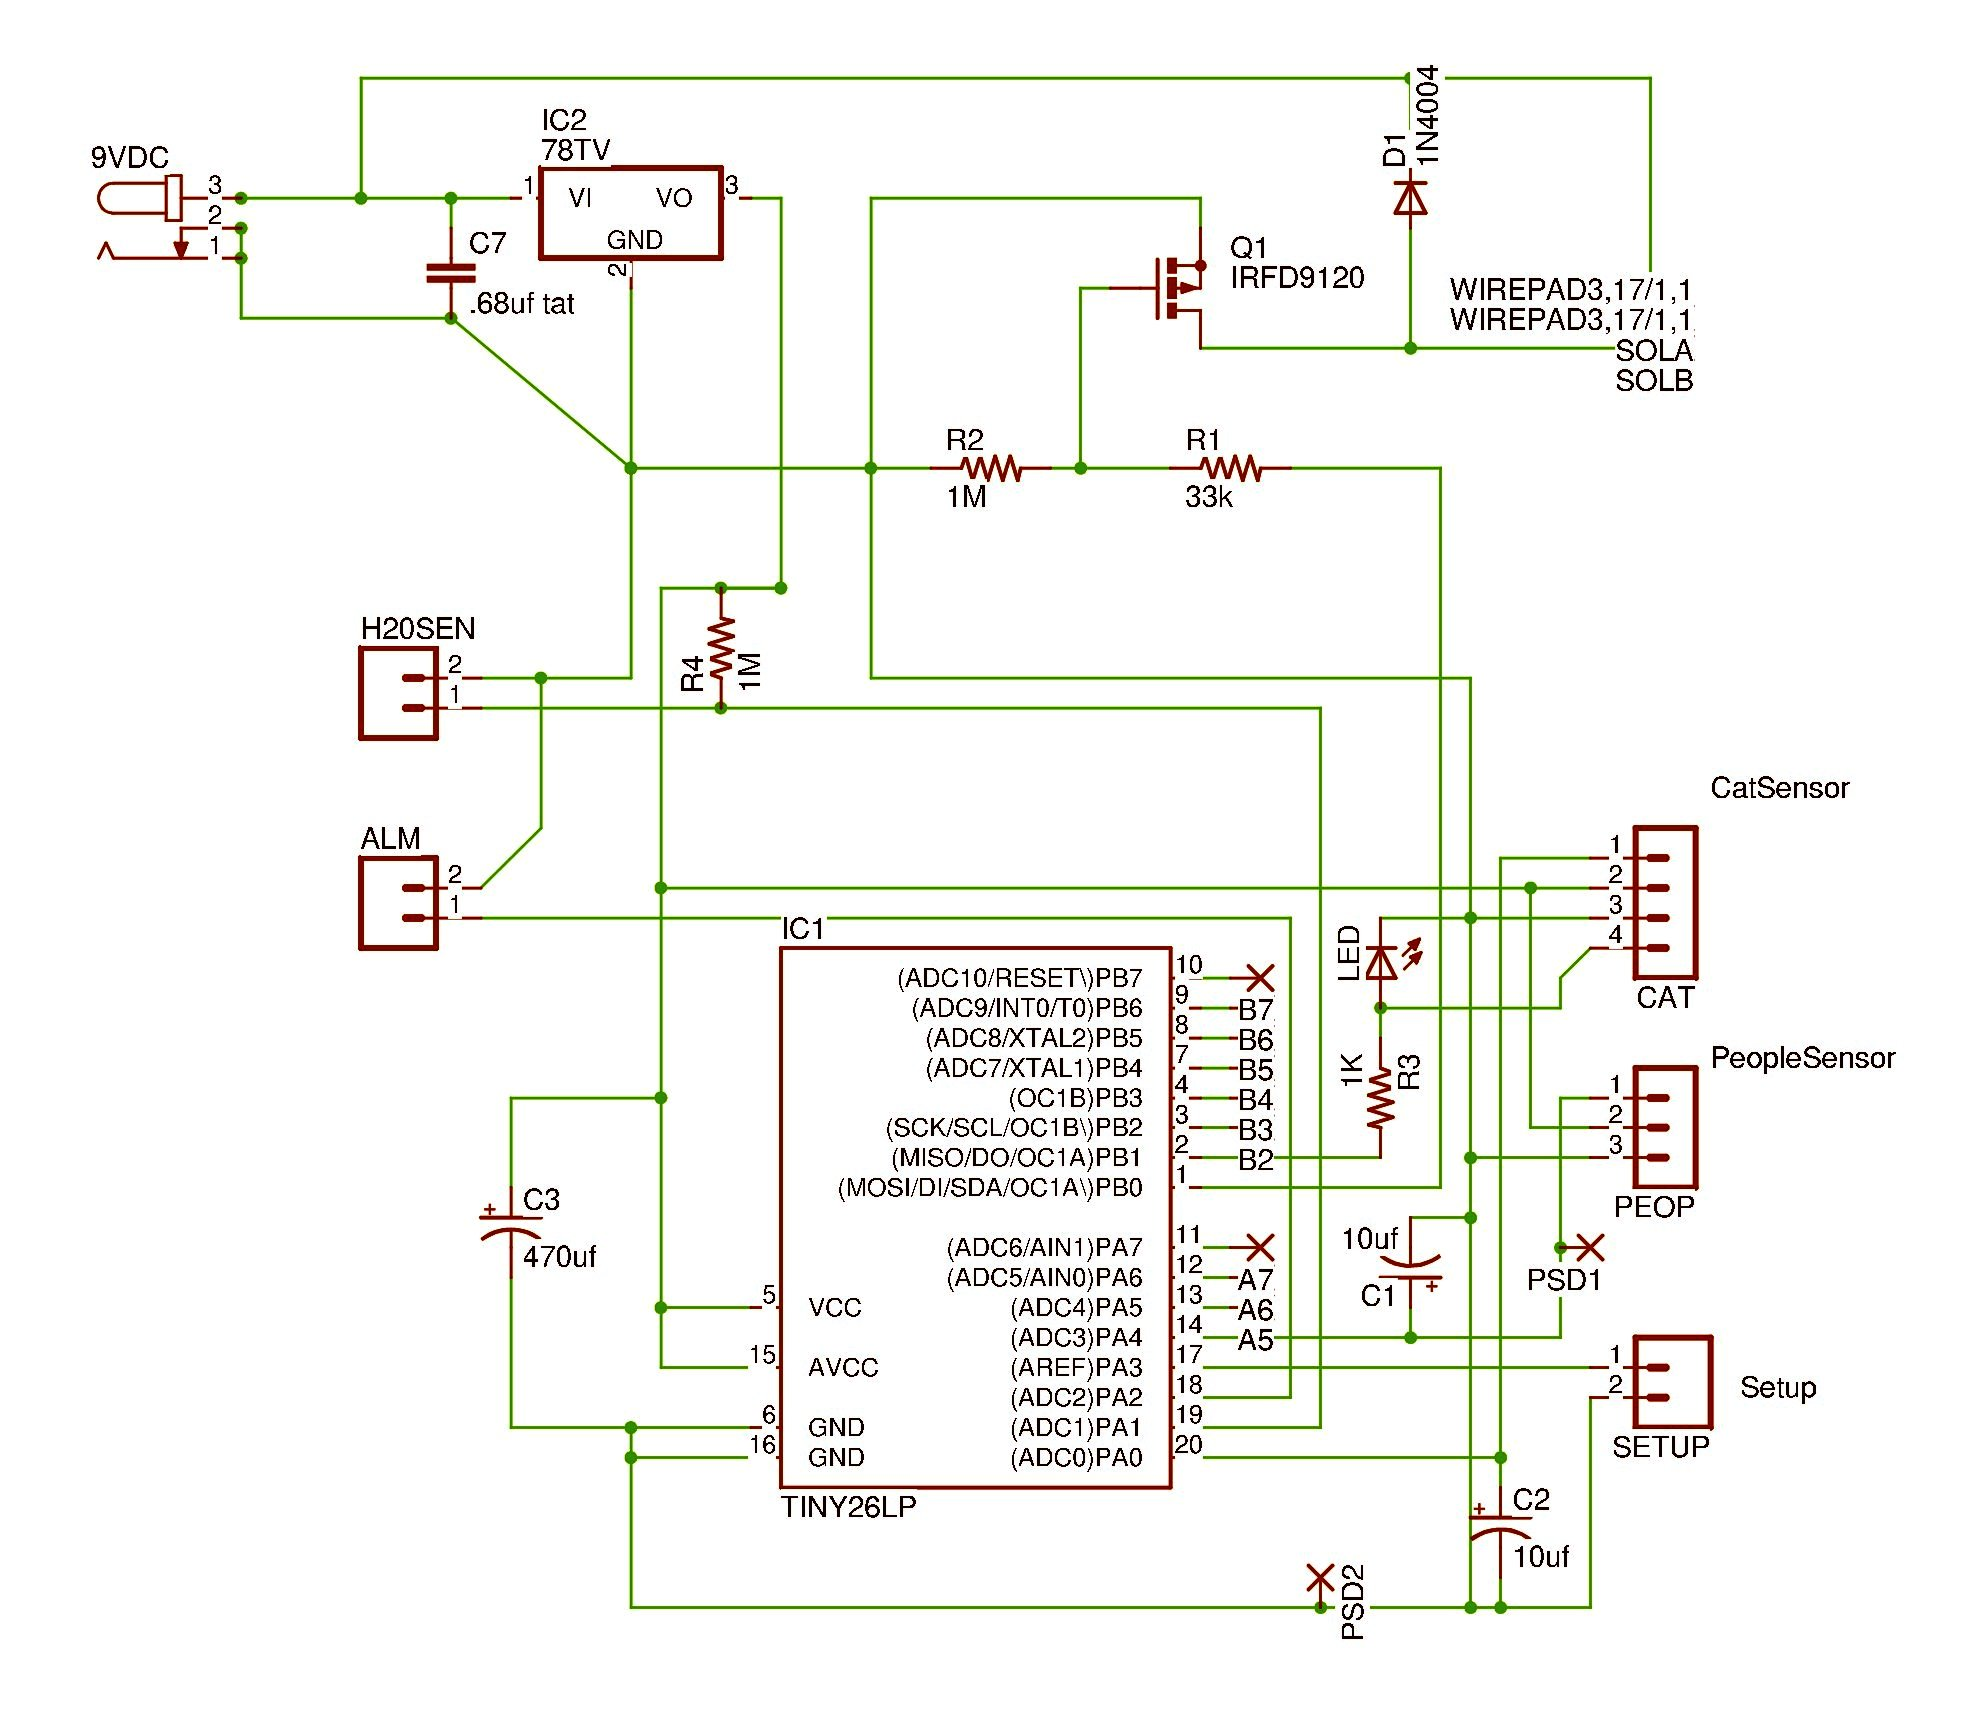 circuit diagram and source code sixerdoodle electronics rh jenrathbun com Complete Circuit Diagram Online Circuit Diagram